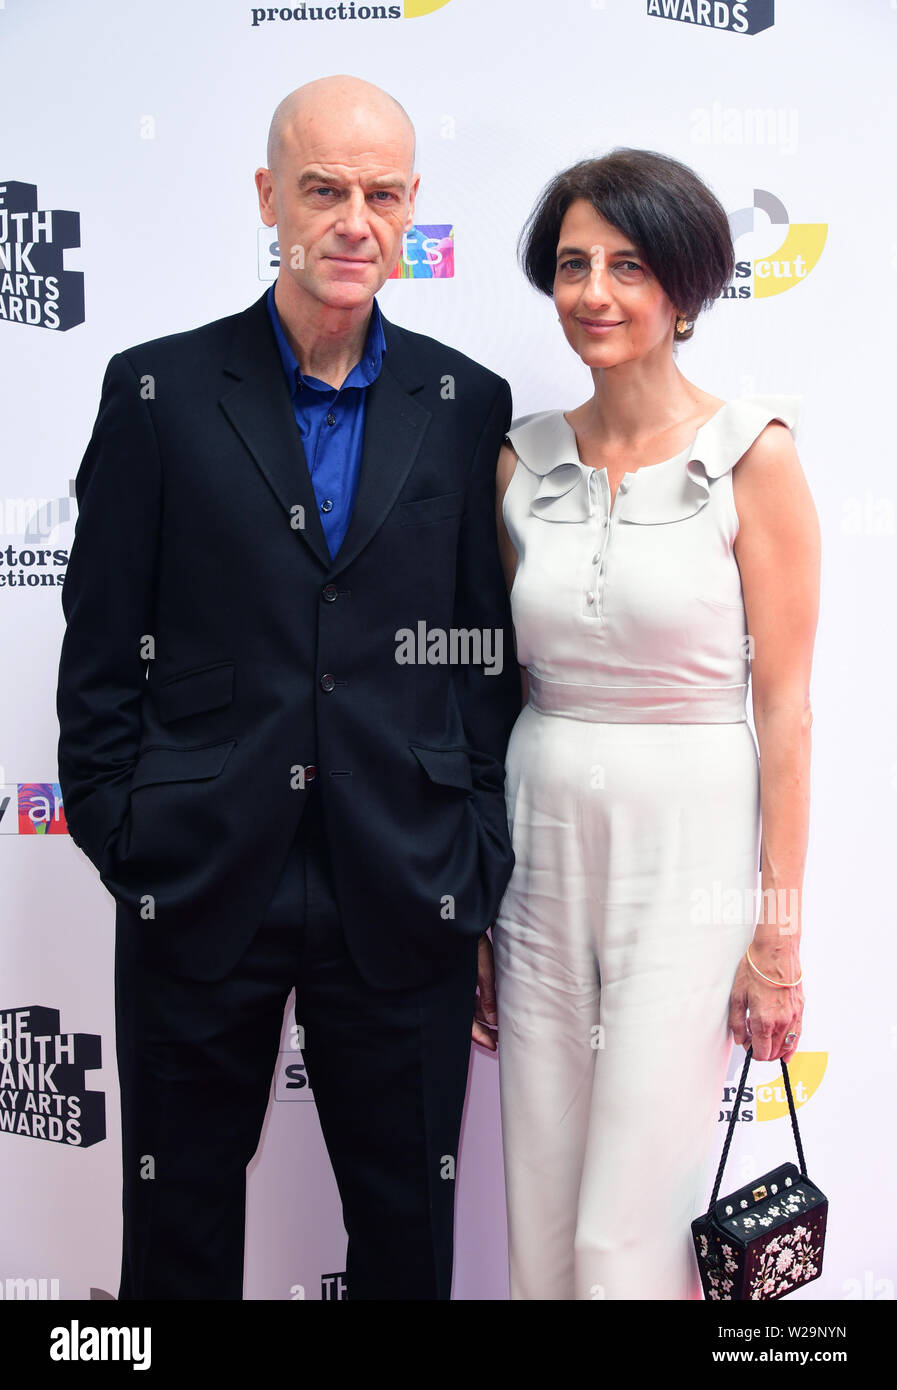 Pip Torrens attending the South Bank Sky Arts Awards at the Savoy Hotel in London. Stock Photo